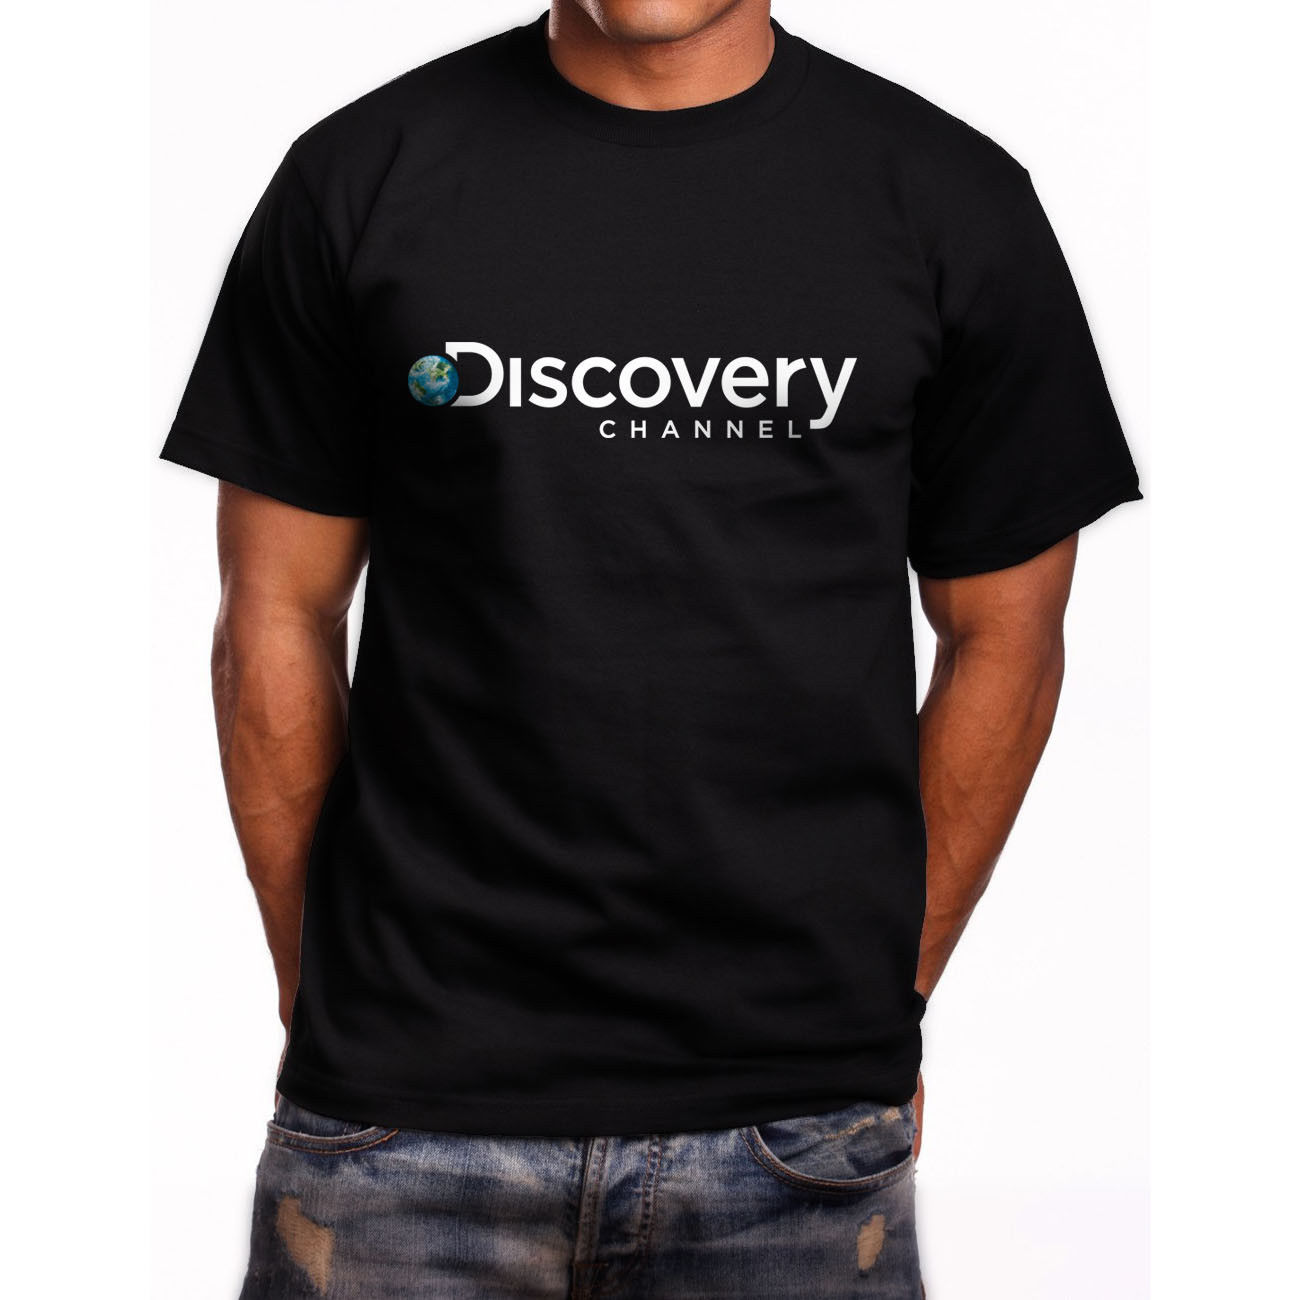 New Discovery Channel Logo Short Sleeve Men/'s Black T-Shirt Size S to 5XL